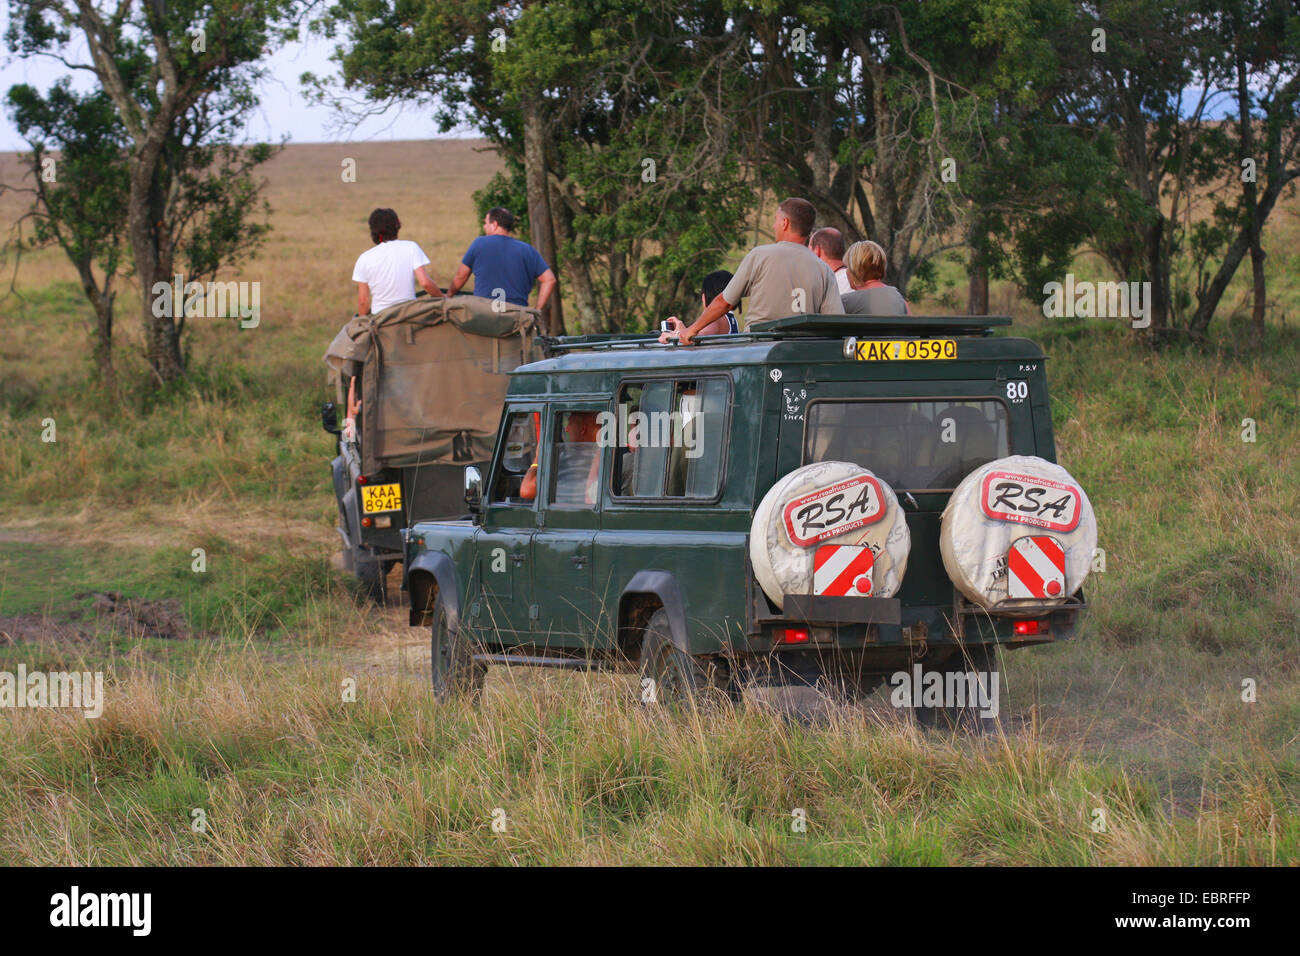 safari tour in the savannah, Kenya, Masai Mara National Park - Stock Image